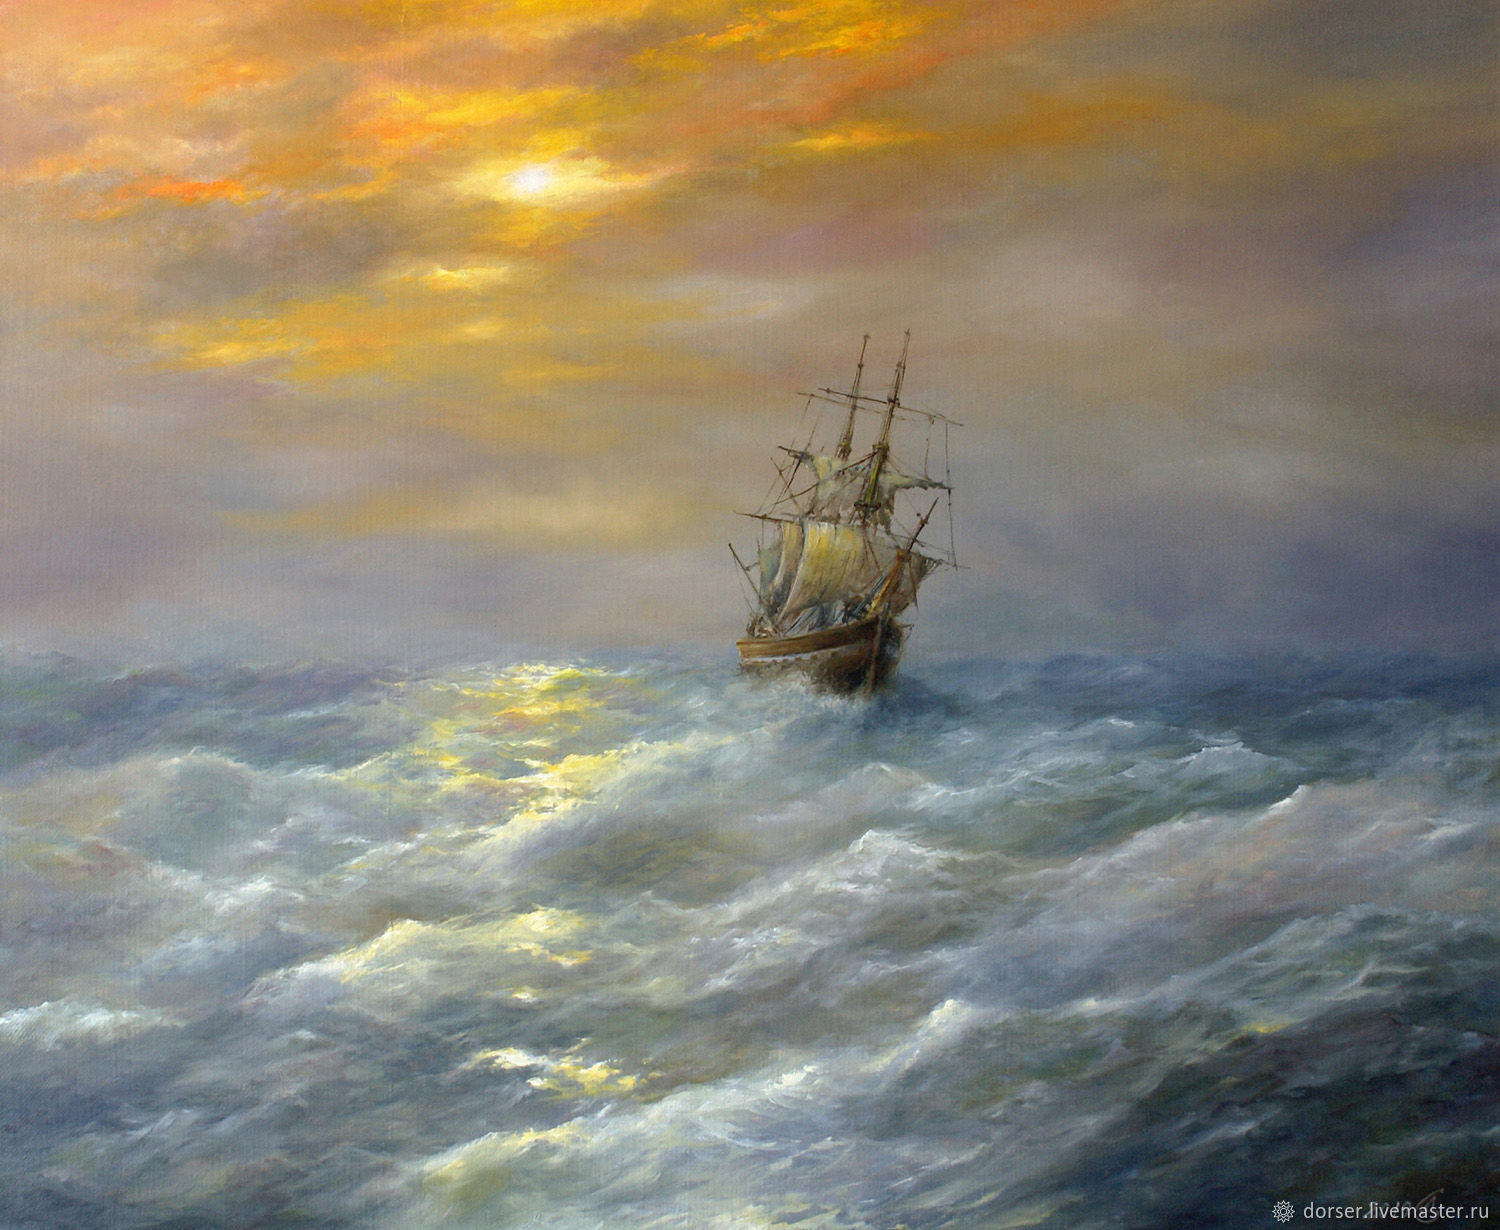 Painting - Sailboat at sea, Pictures, Moscow,  Фото №1